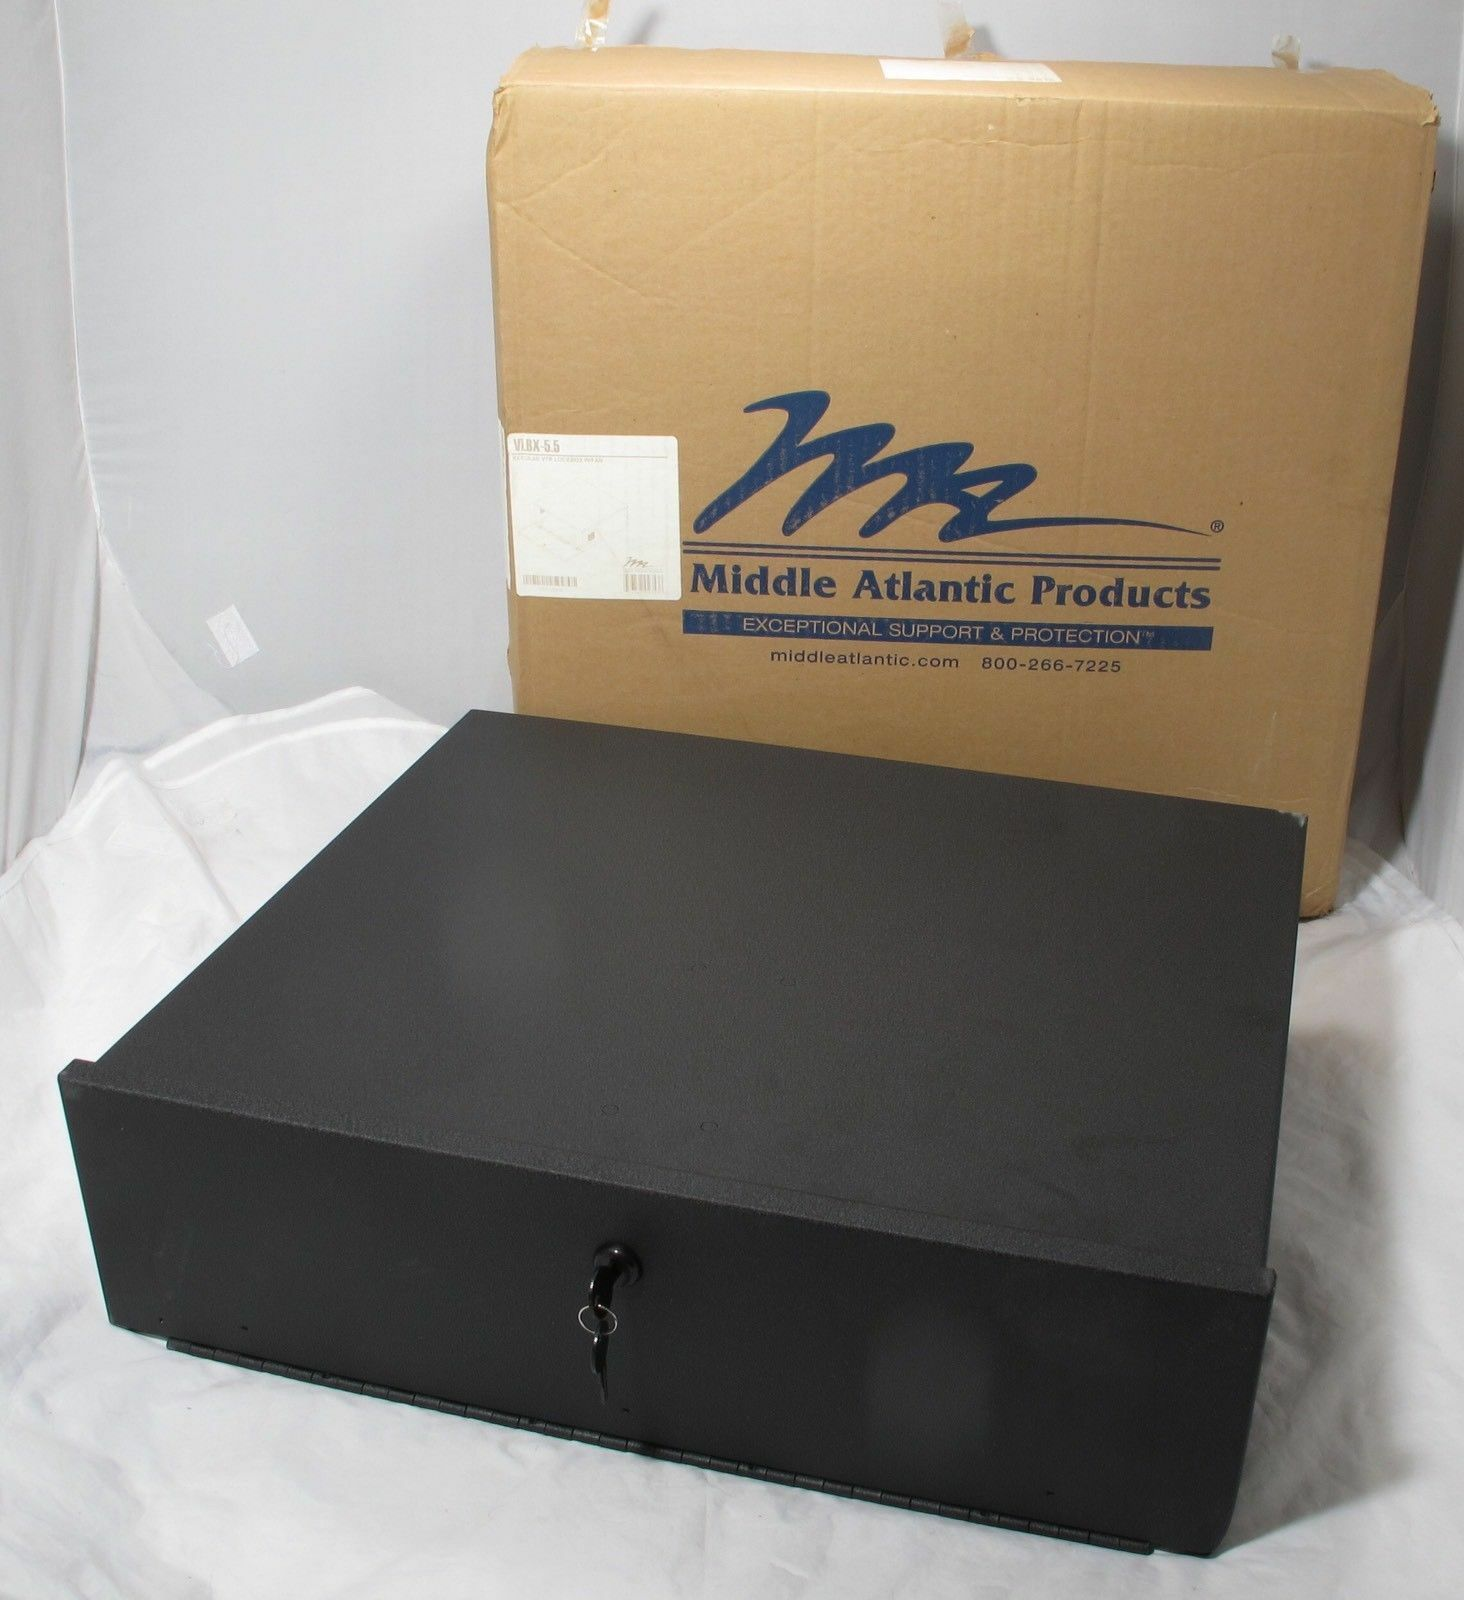 MIDDLE ATLANTIC PRODUCTS VLBX VTR LOCK BOX WITH FAN NIB